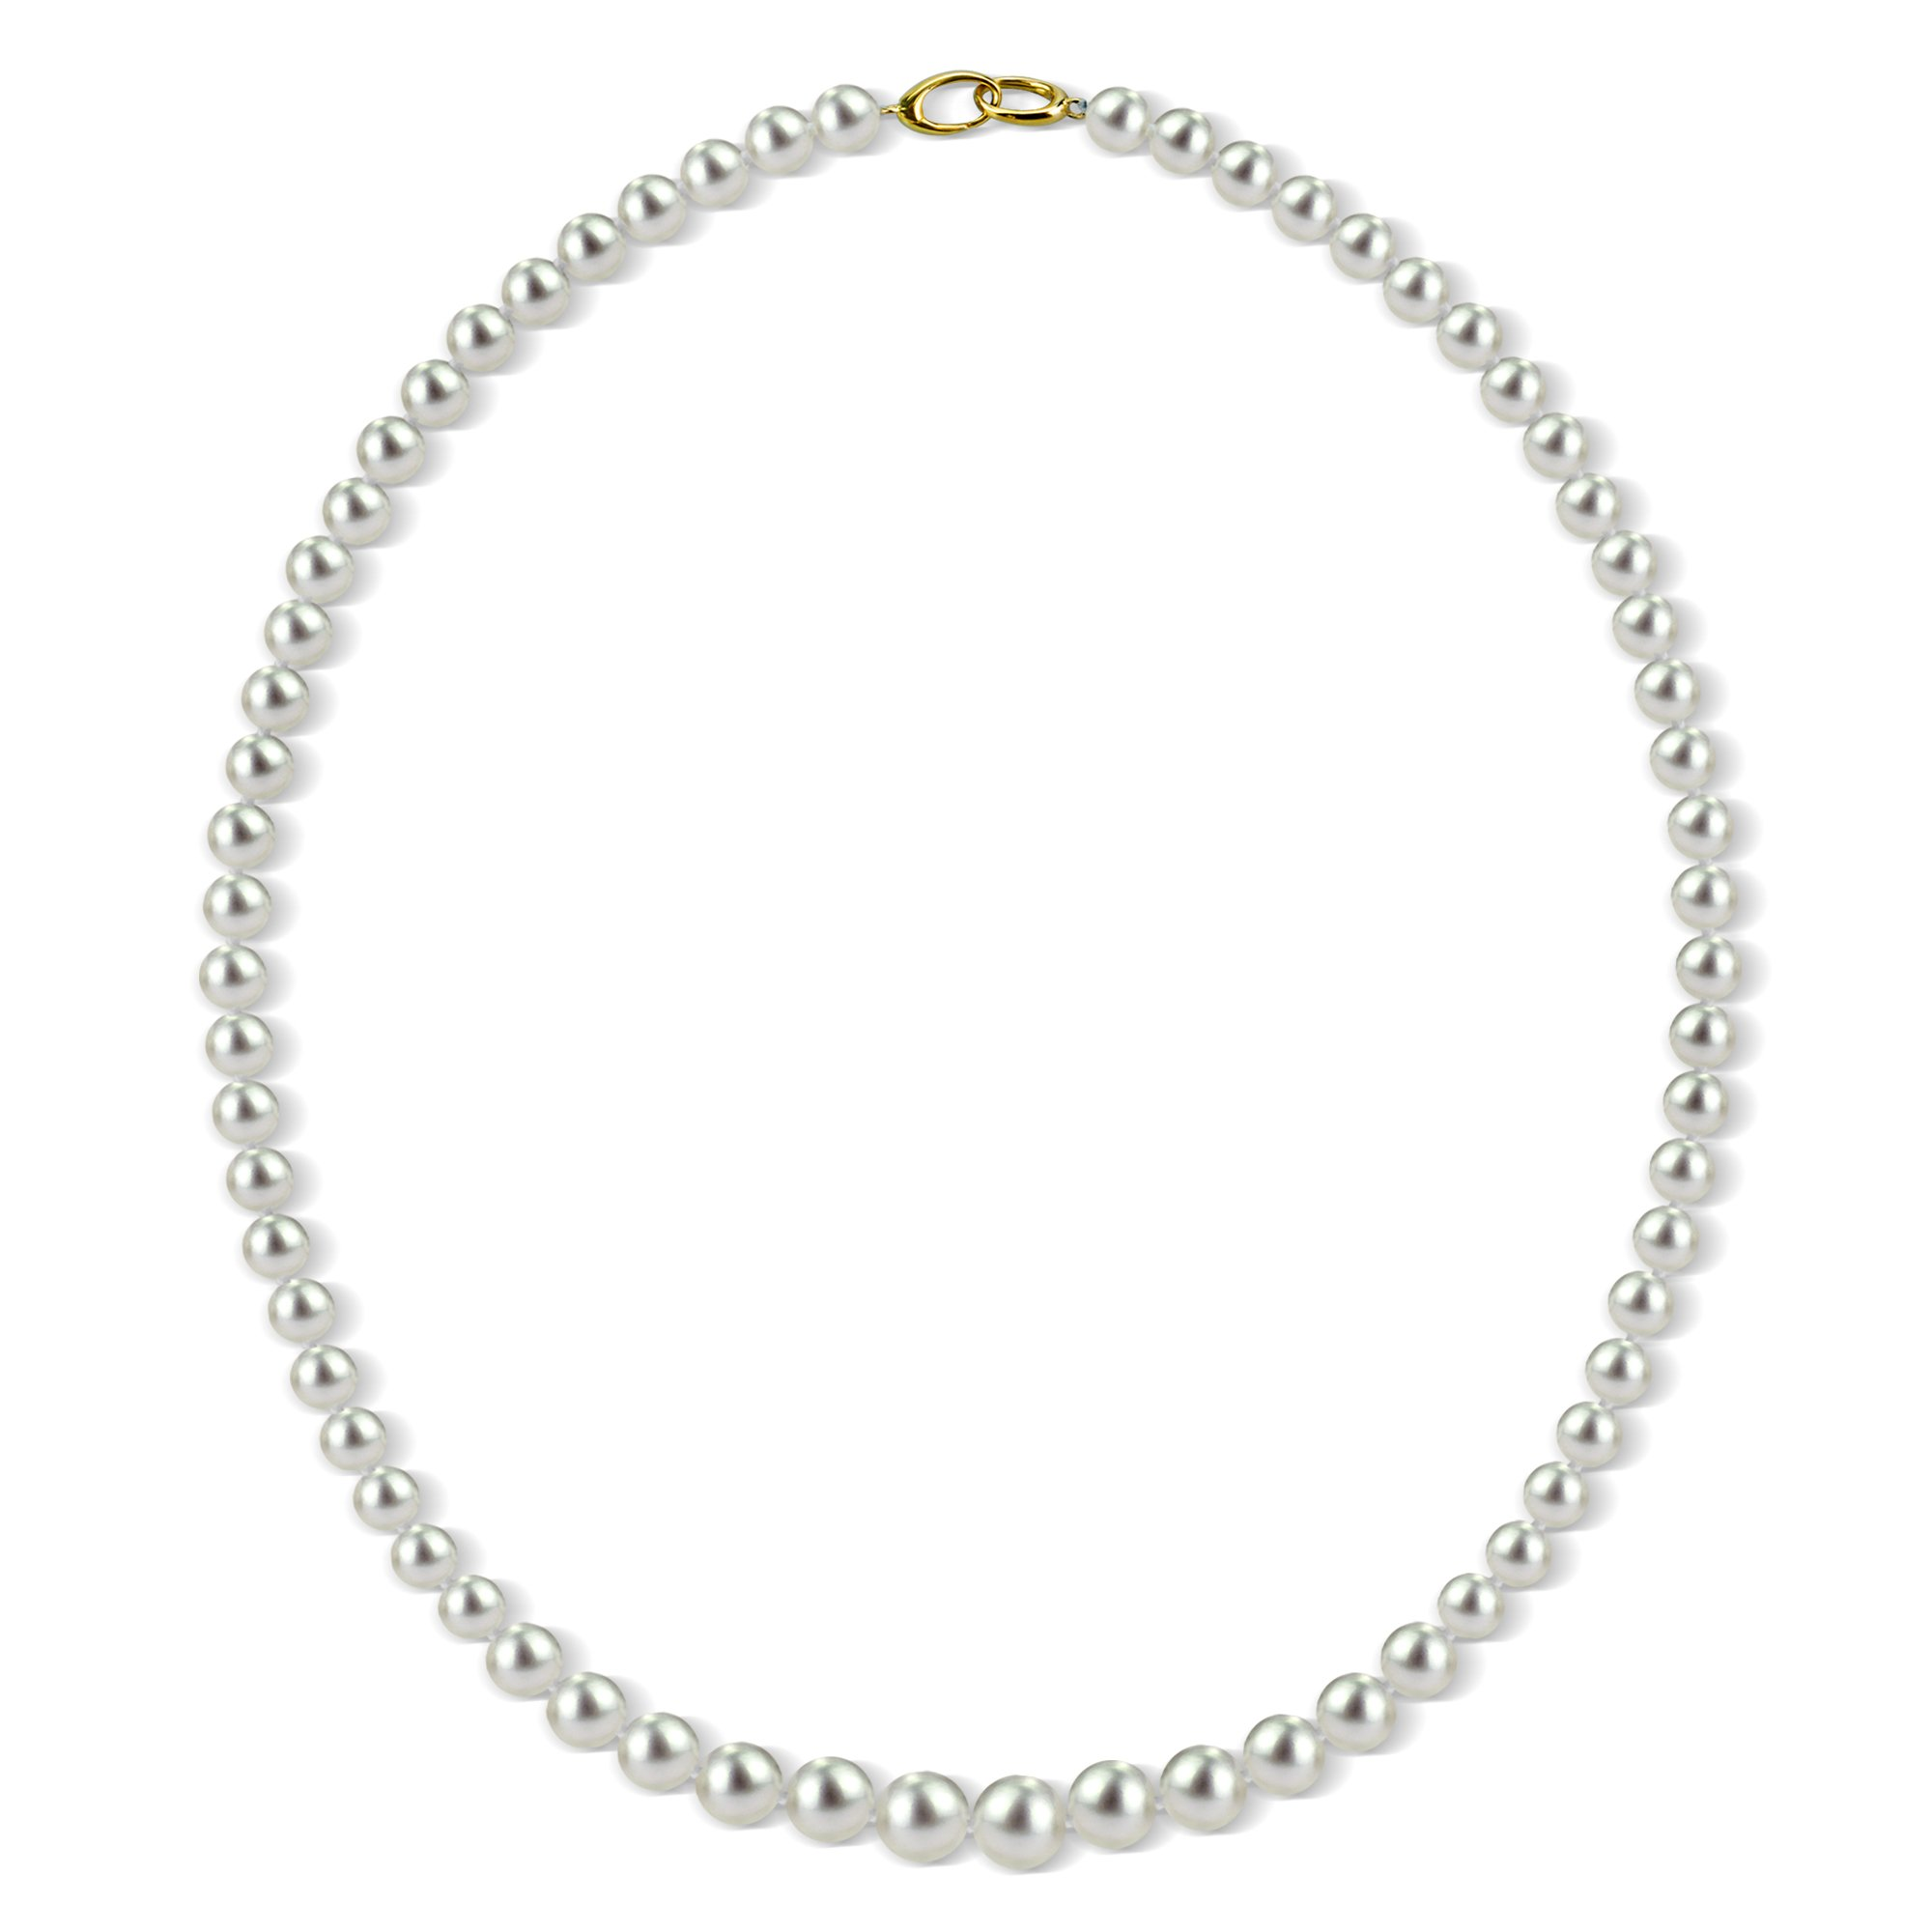 Graduated Cultured White Freshwater Pearl Necklace for Women 14K Yellow Gold 18 inch 6-8.5mm